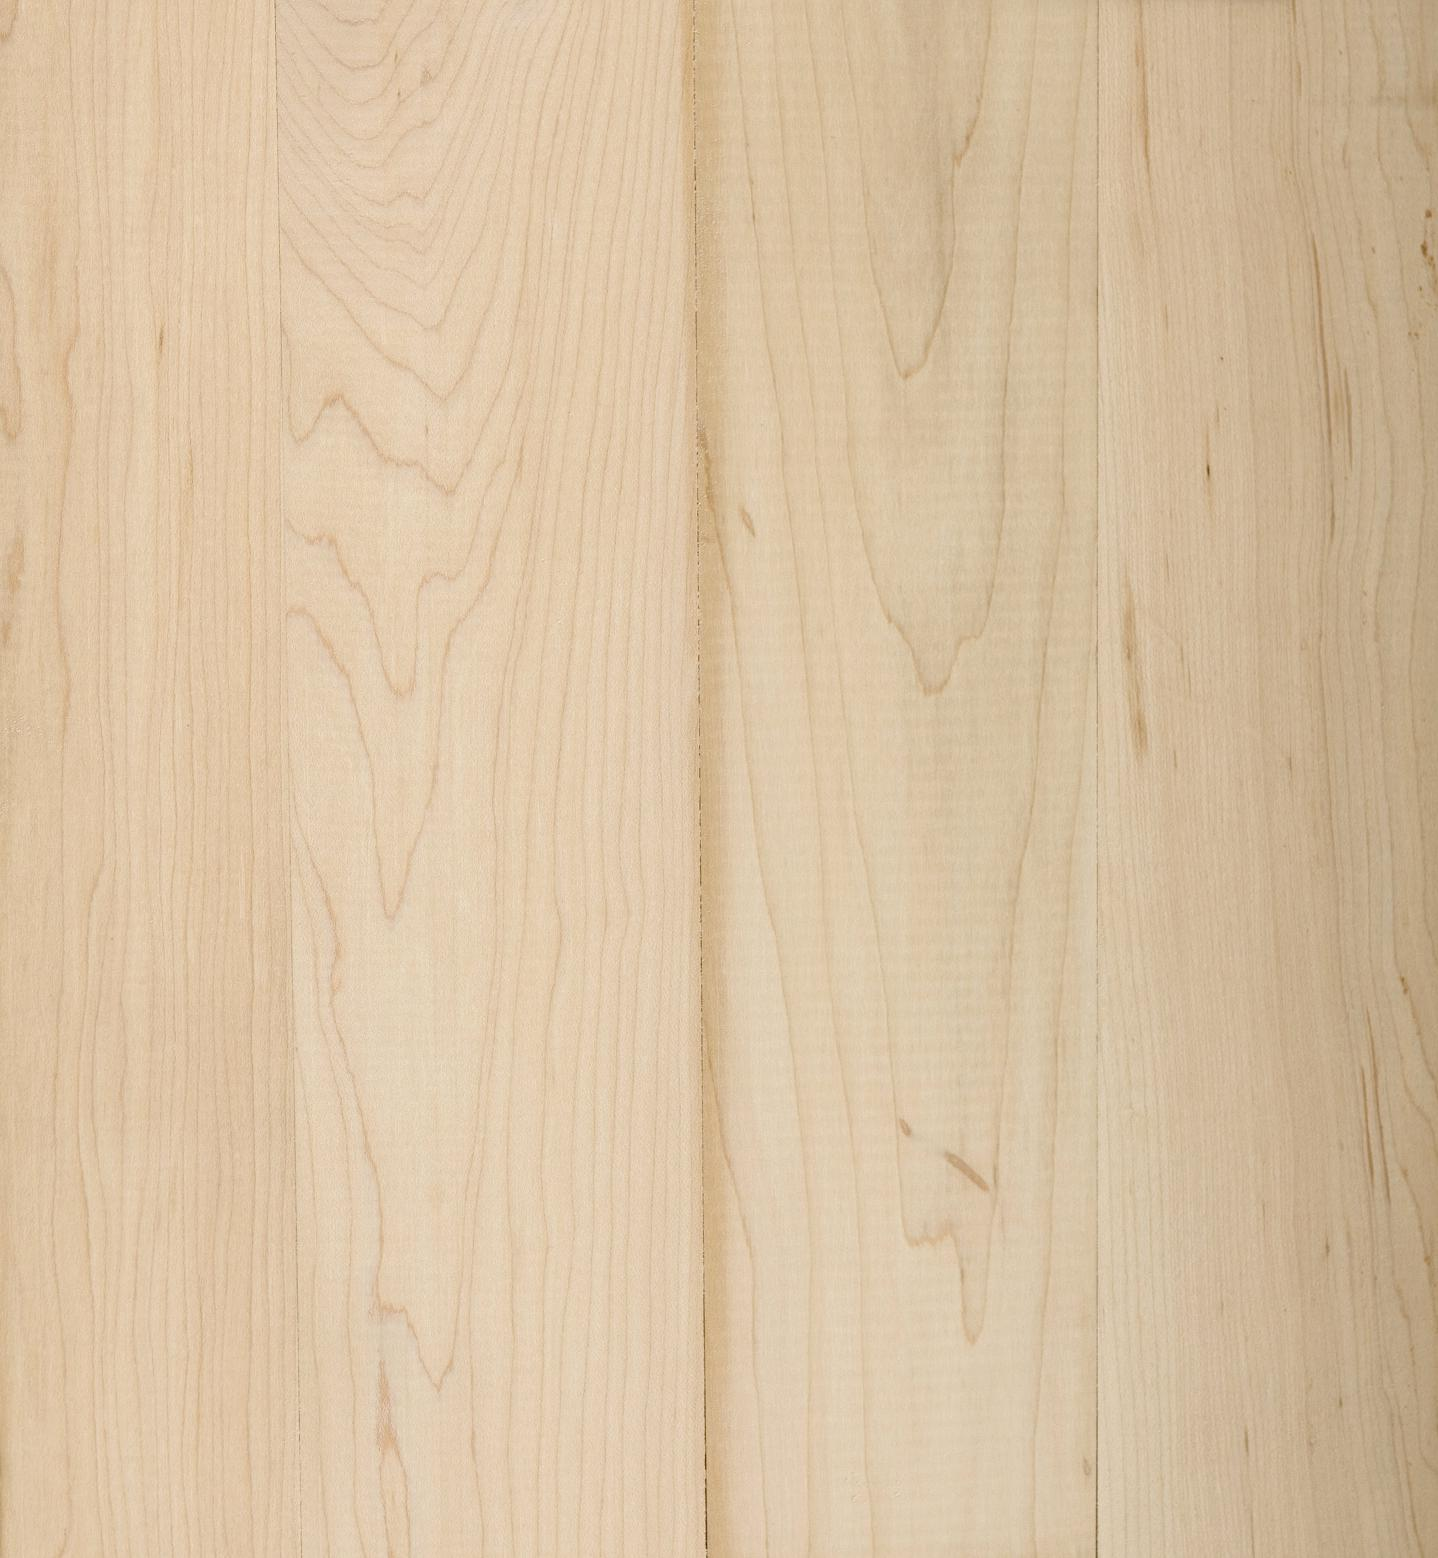 The 2012 knotty awards woodflooringtrends for Wood flooring natural